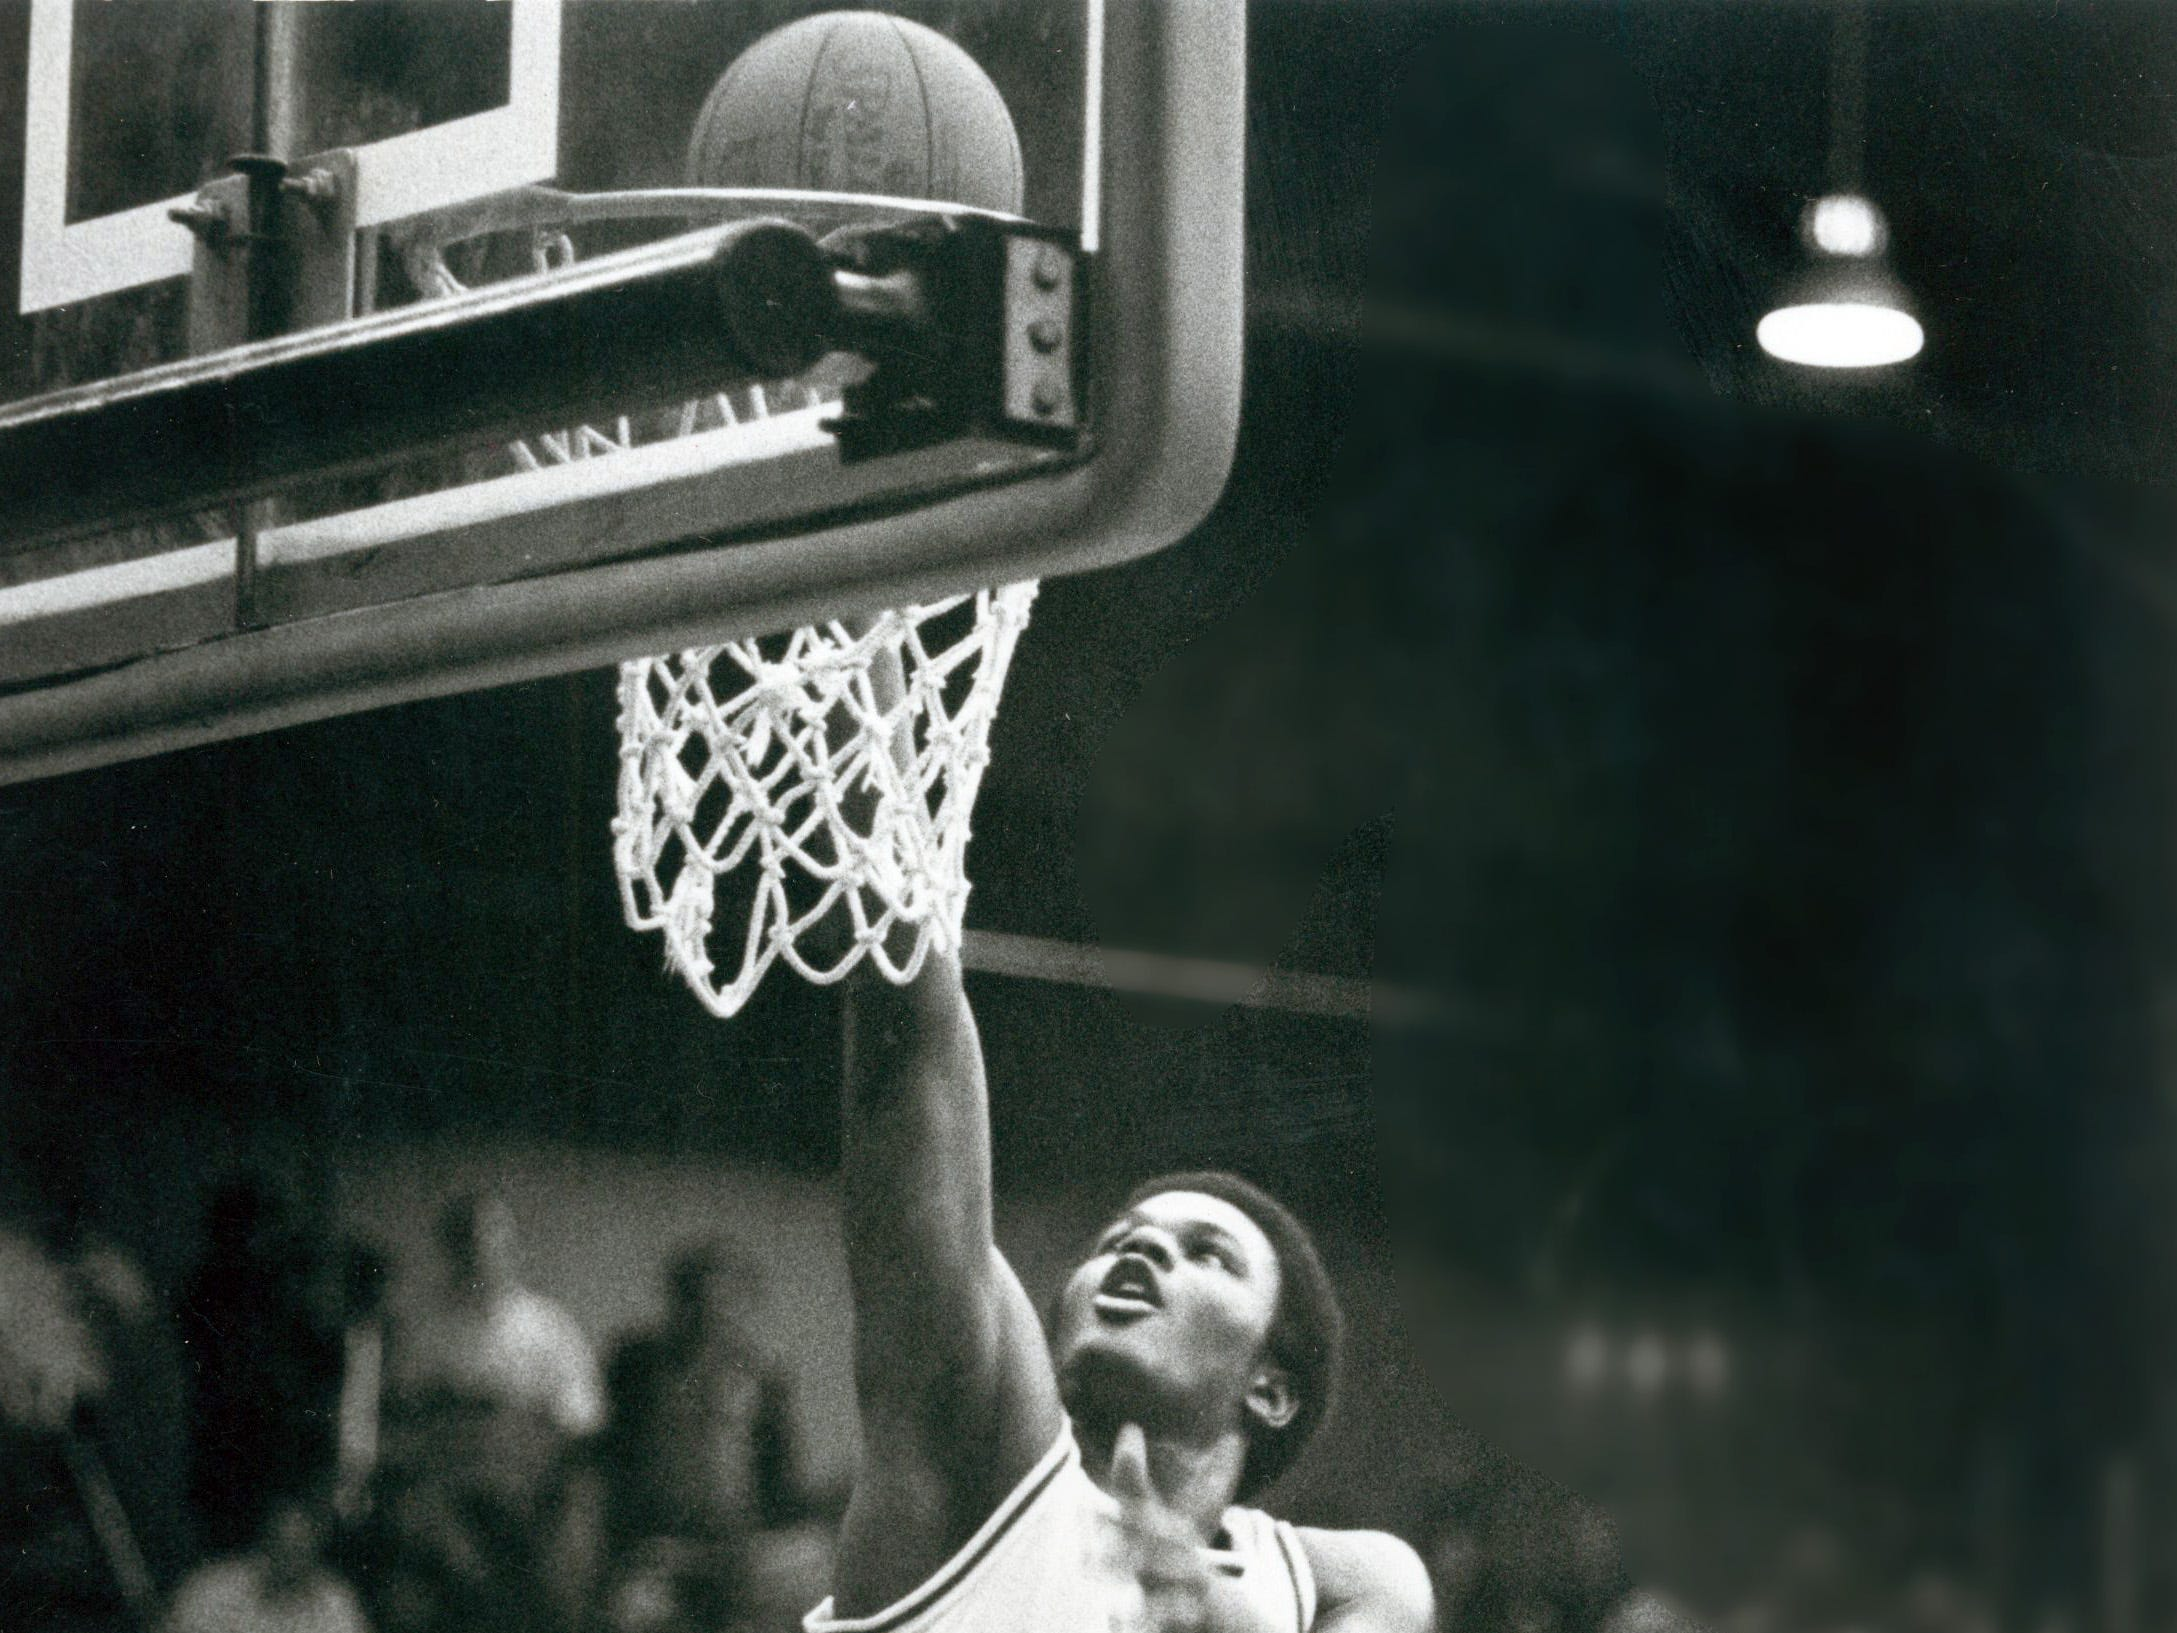 Brian Miles goes up for two points in a game at North High School.